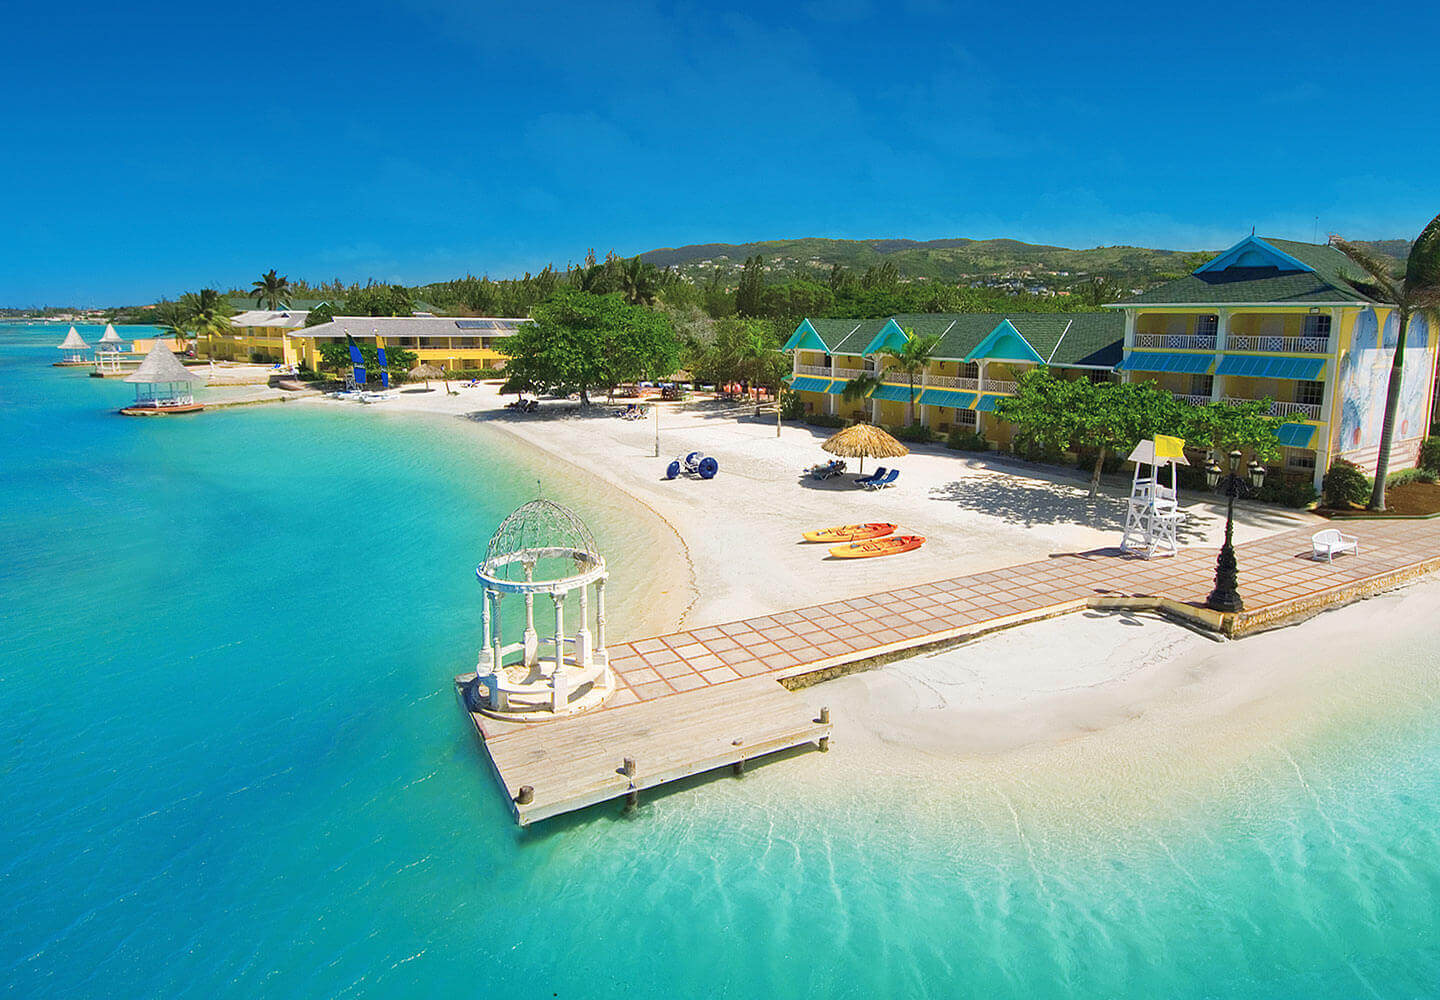 Sandals Royal Caribbean - All Inclusive Vacations